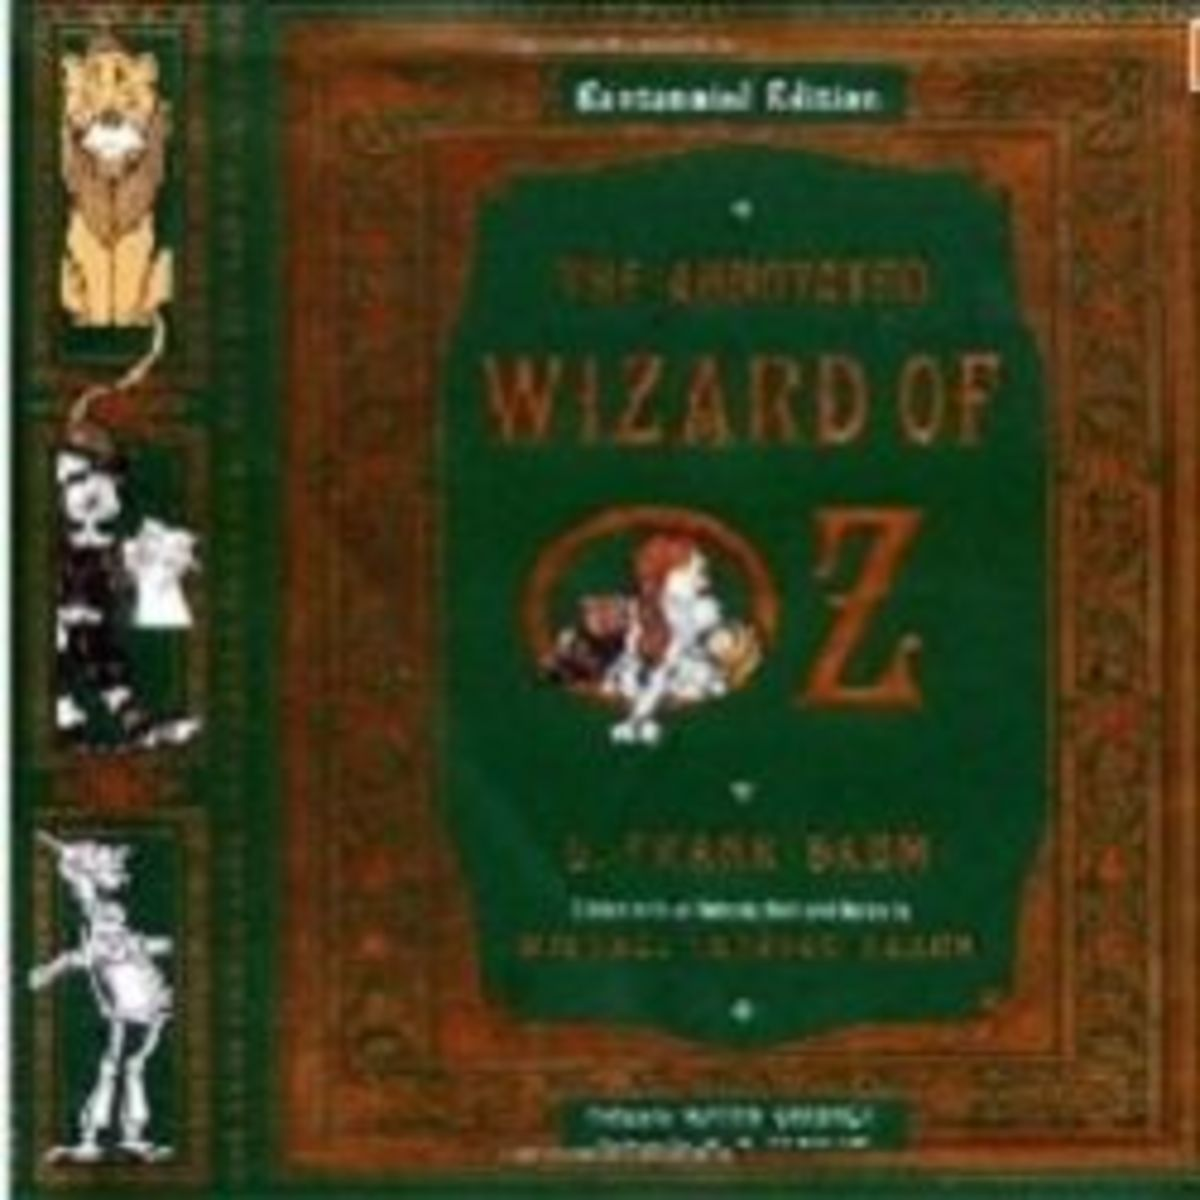 Wizard of Oz Lesson Plans for High School: Critical Analysis